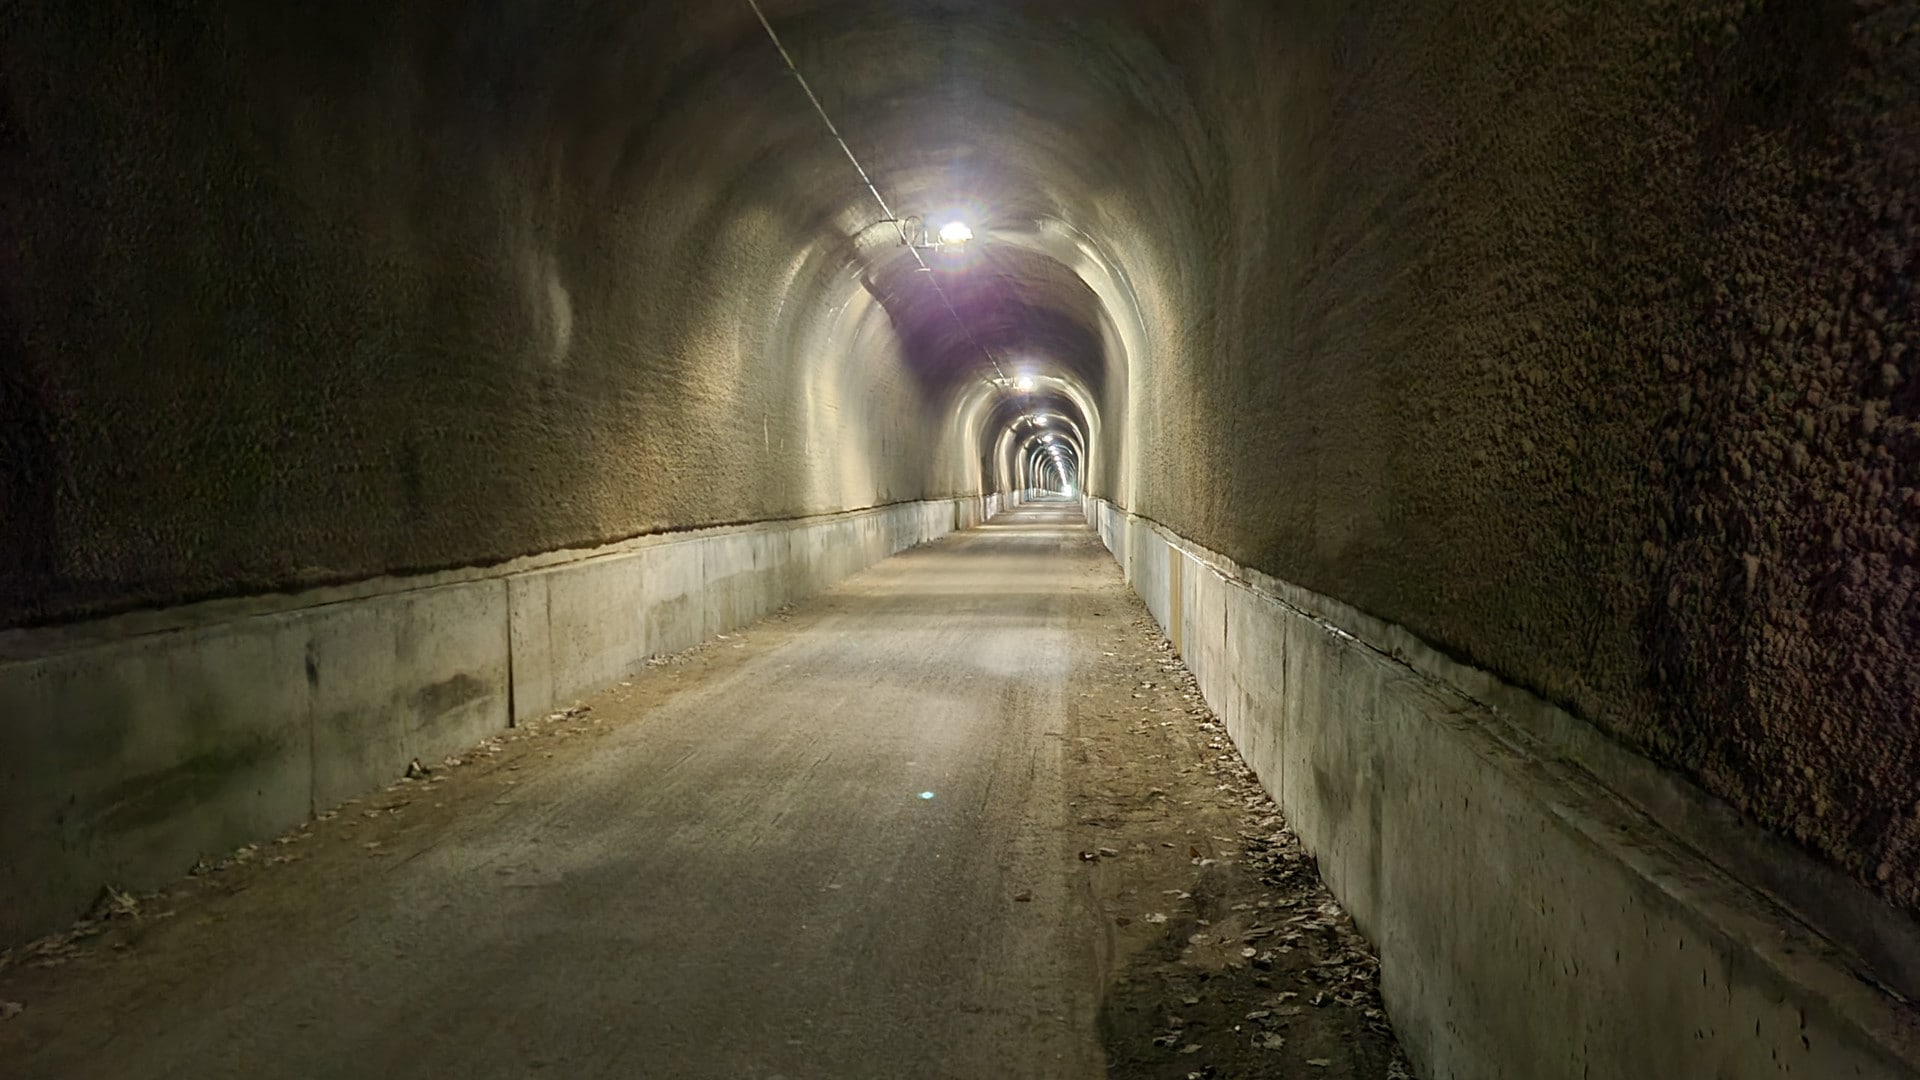 A long tunnel is lit by bright overhead lights.